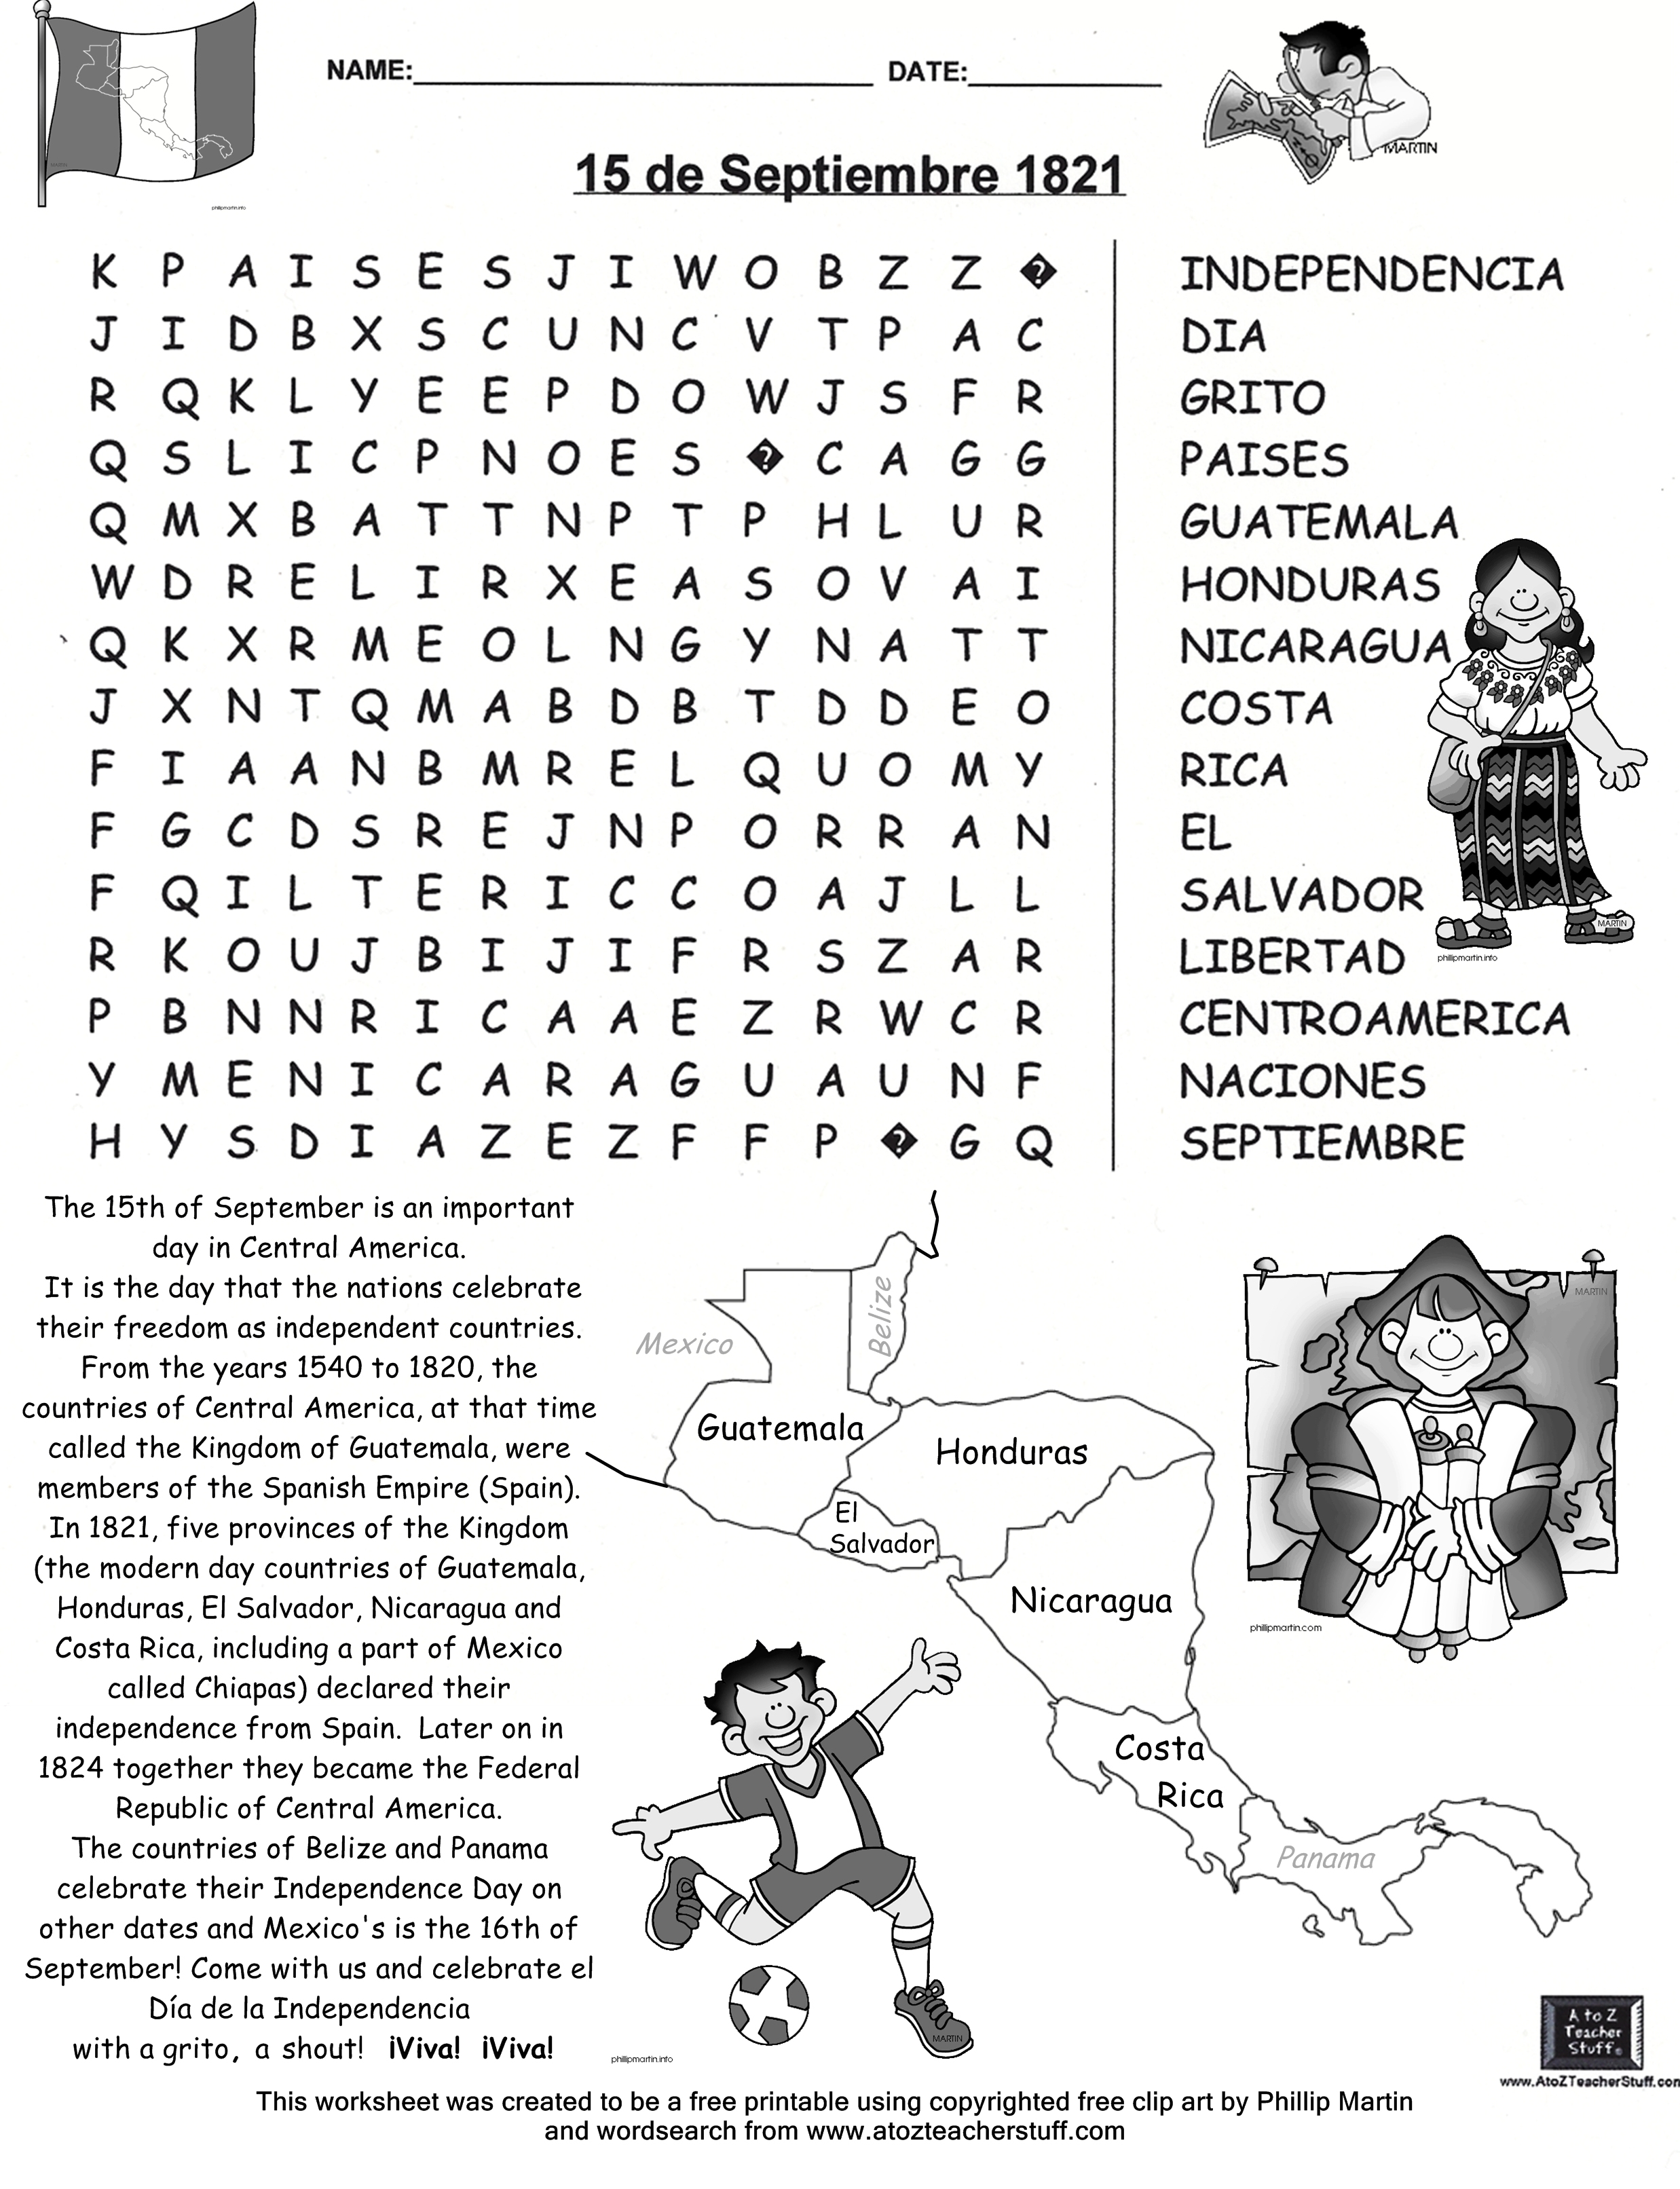 Hispanic Heritage Month Worksheets Pdf Archives - Hashtag Bg | Hispanic Heritage Month Printable Worksheets